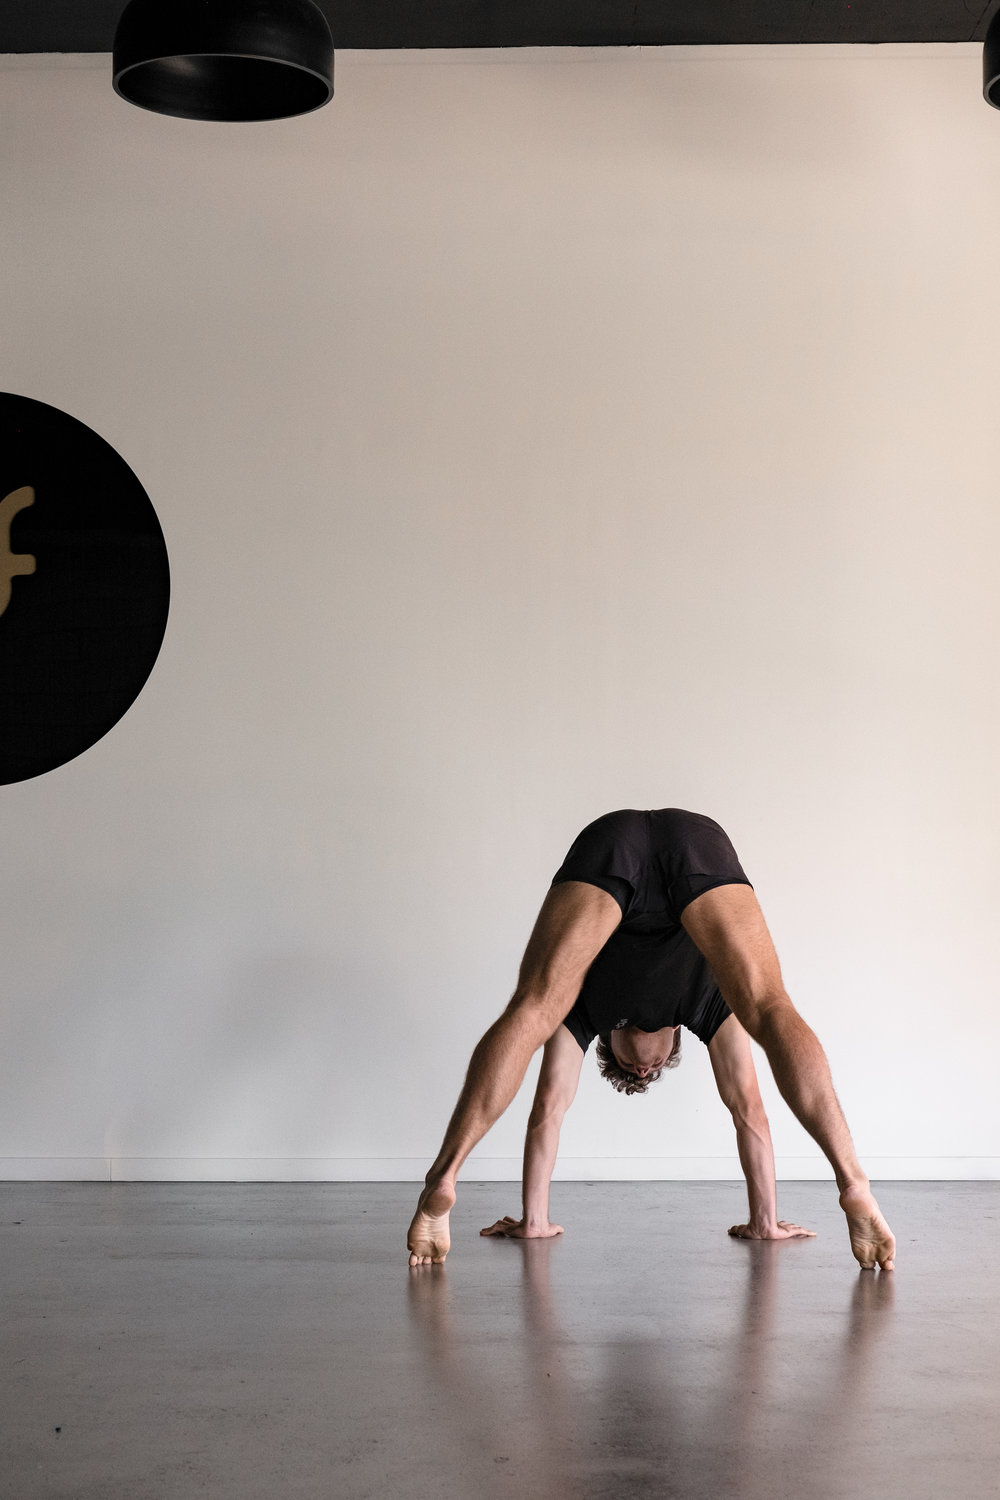 Handstand_Preparation_Training (34 of 38).jpg